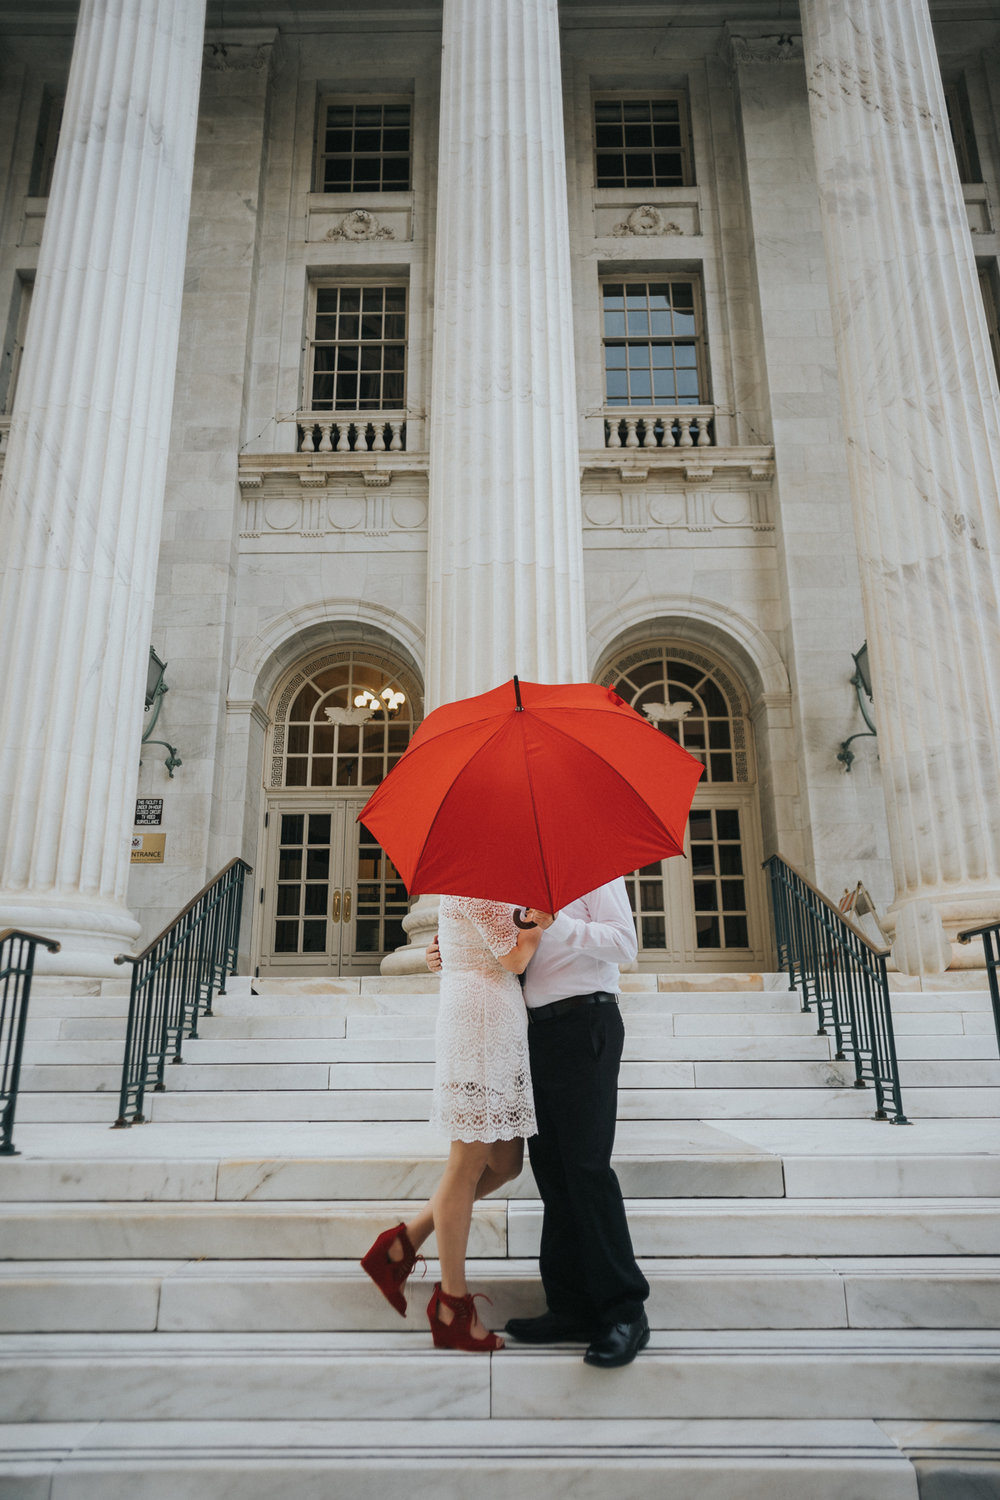 Romantic downtown Denver engagement photoshoot.  Couple kissing behind red umbrella